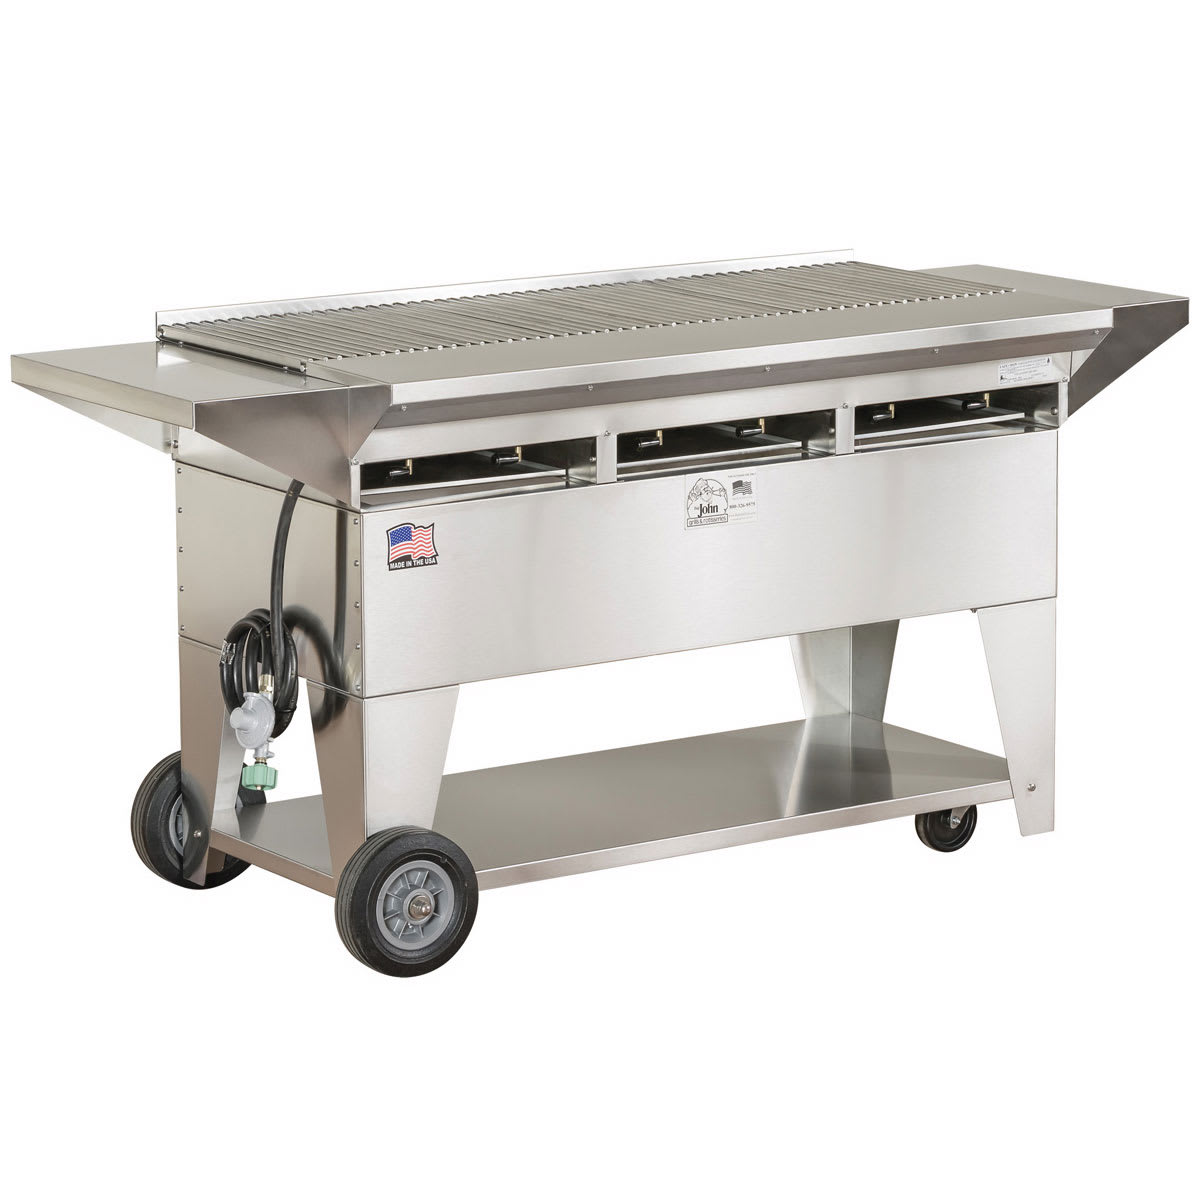 """Big Johns Grills & Rotisseries A3CC-SSE 49"""" Mobile Gas Commercial Outdoor Grill w/ Multiple Heat Zones, LP"""